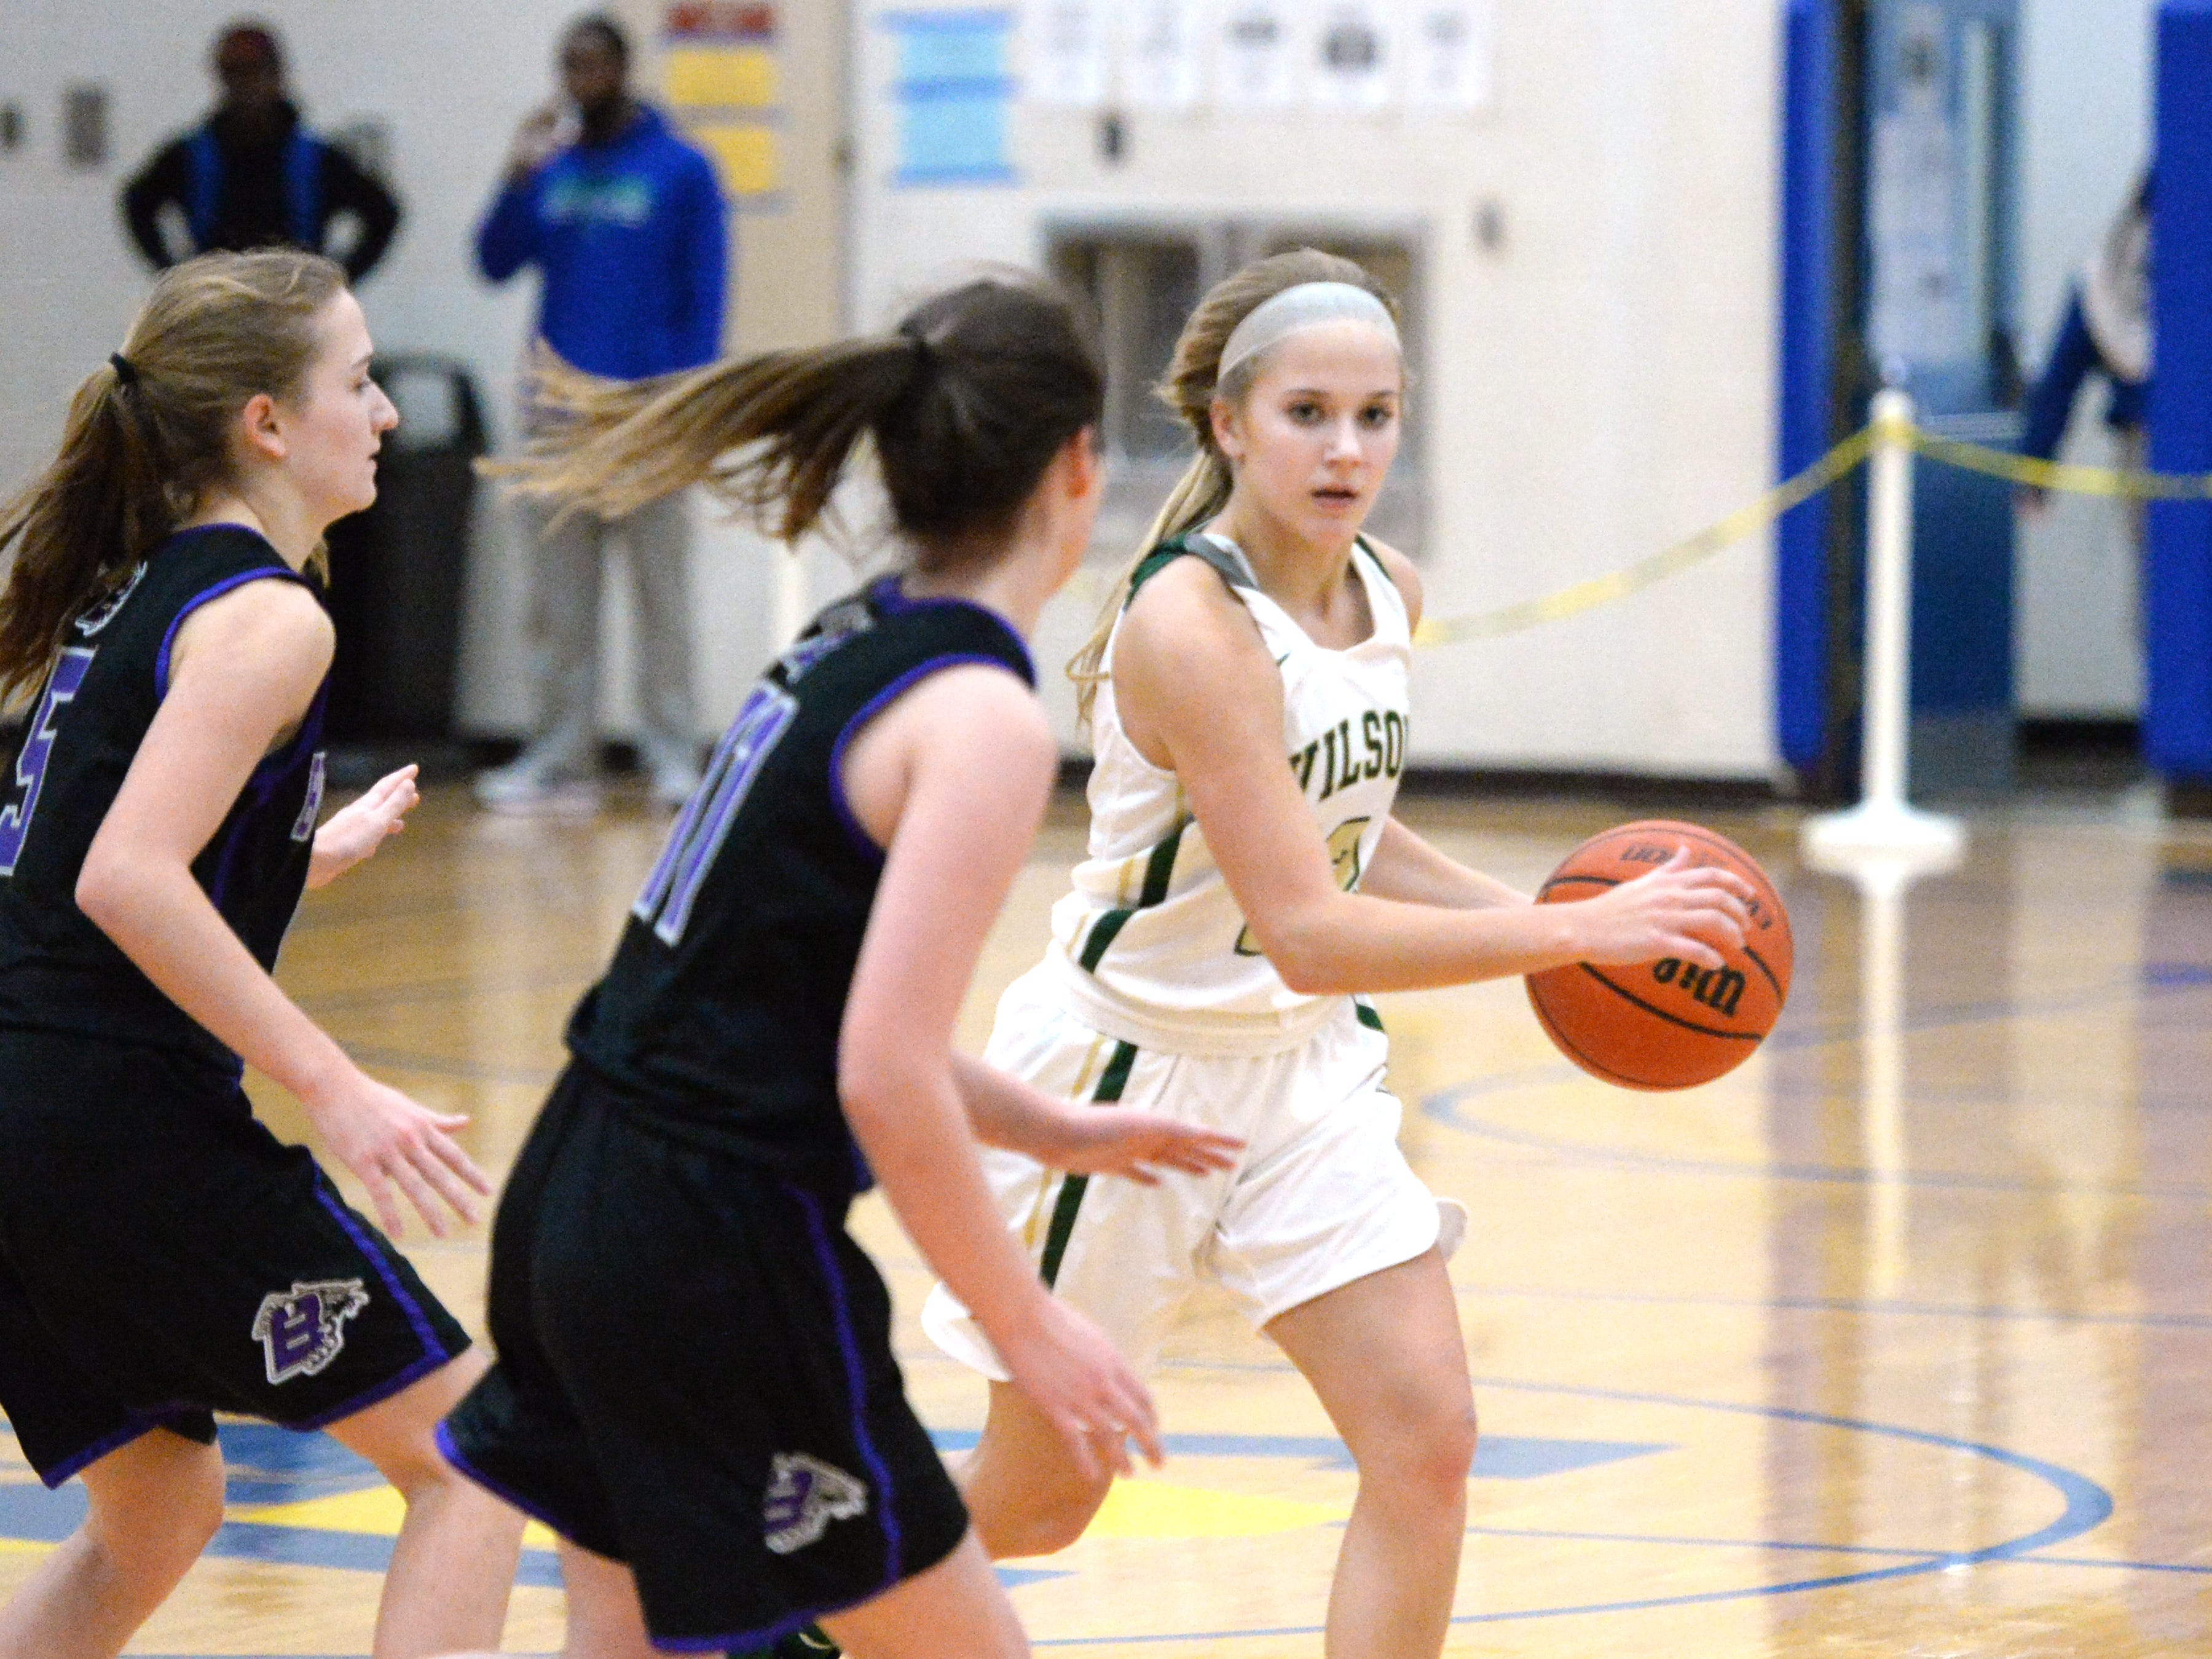 Wilson Memorial's LeAnna Rankin works to find an open teammate Saturday at Western Albemarle High School, part of the Play of Preemies Showcase.